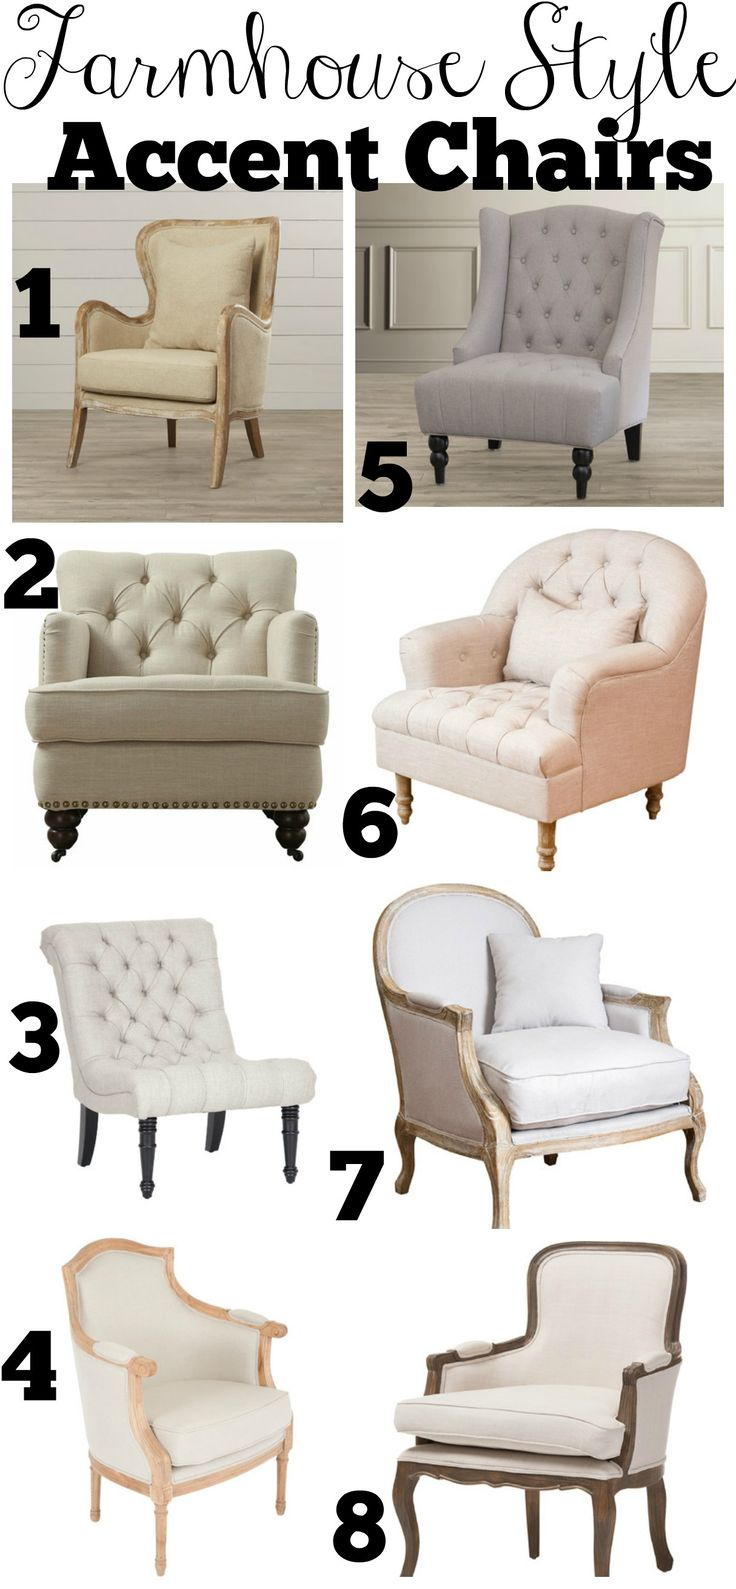 Affordable Farmhouse Style Accent Chairs Part 38